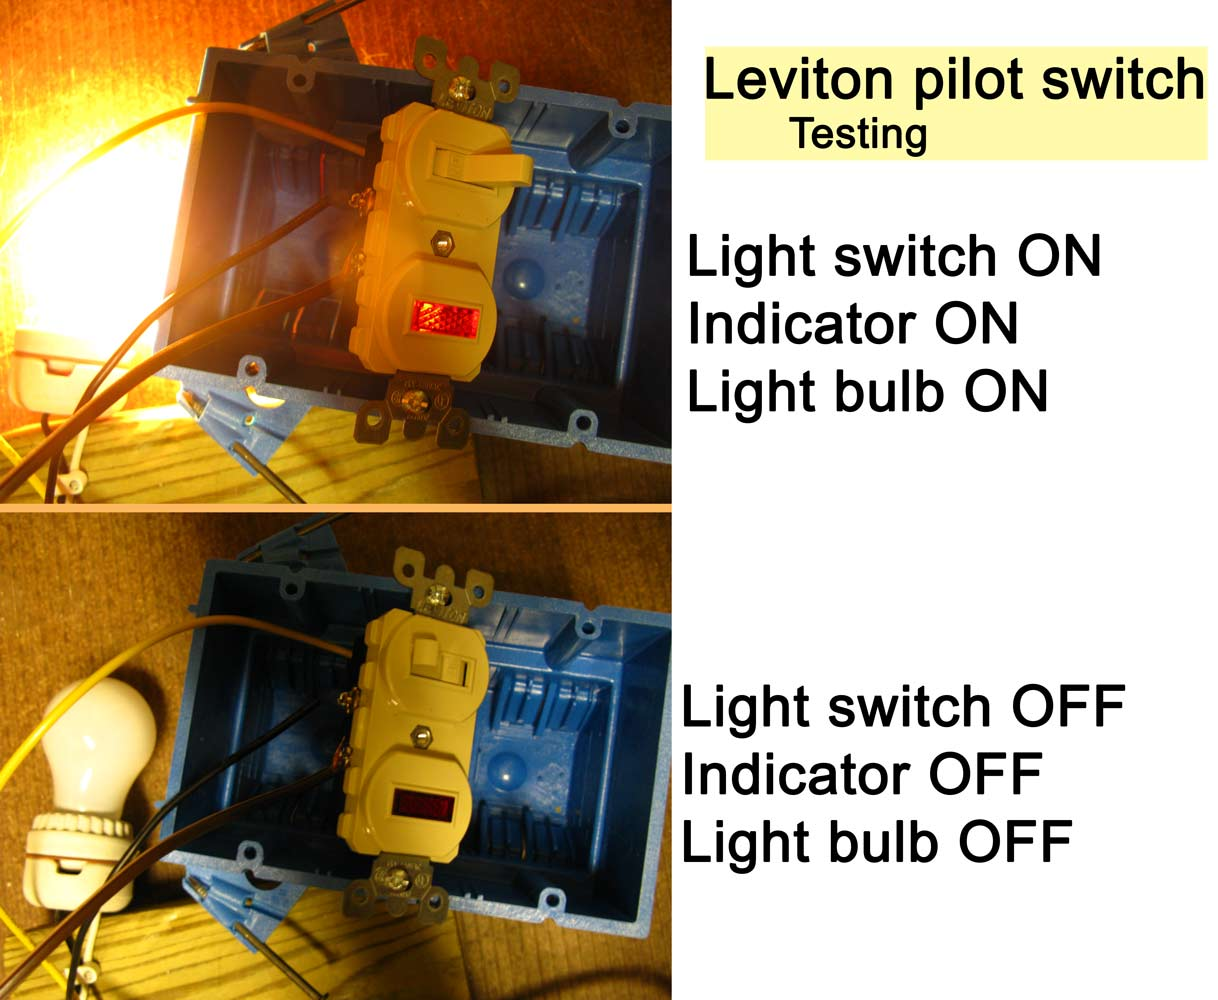 Light Switch Wiring Diagram For Leviton Pilot Library 2 Way Cooper 277 See Testing Photographs 1